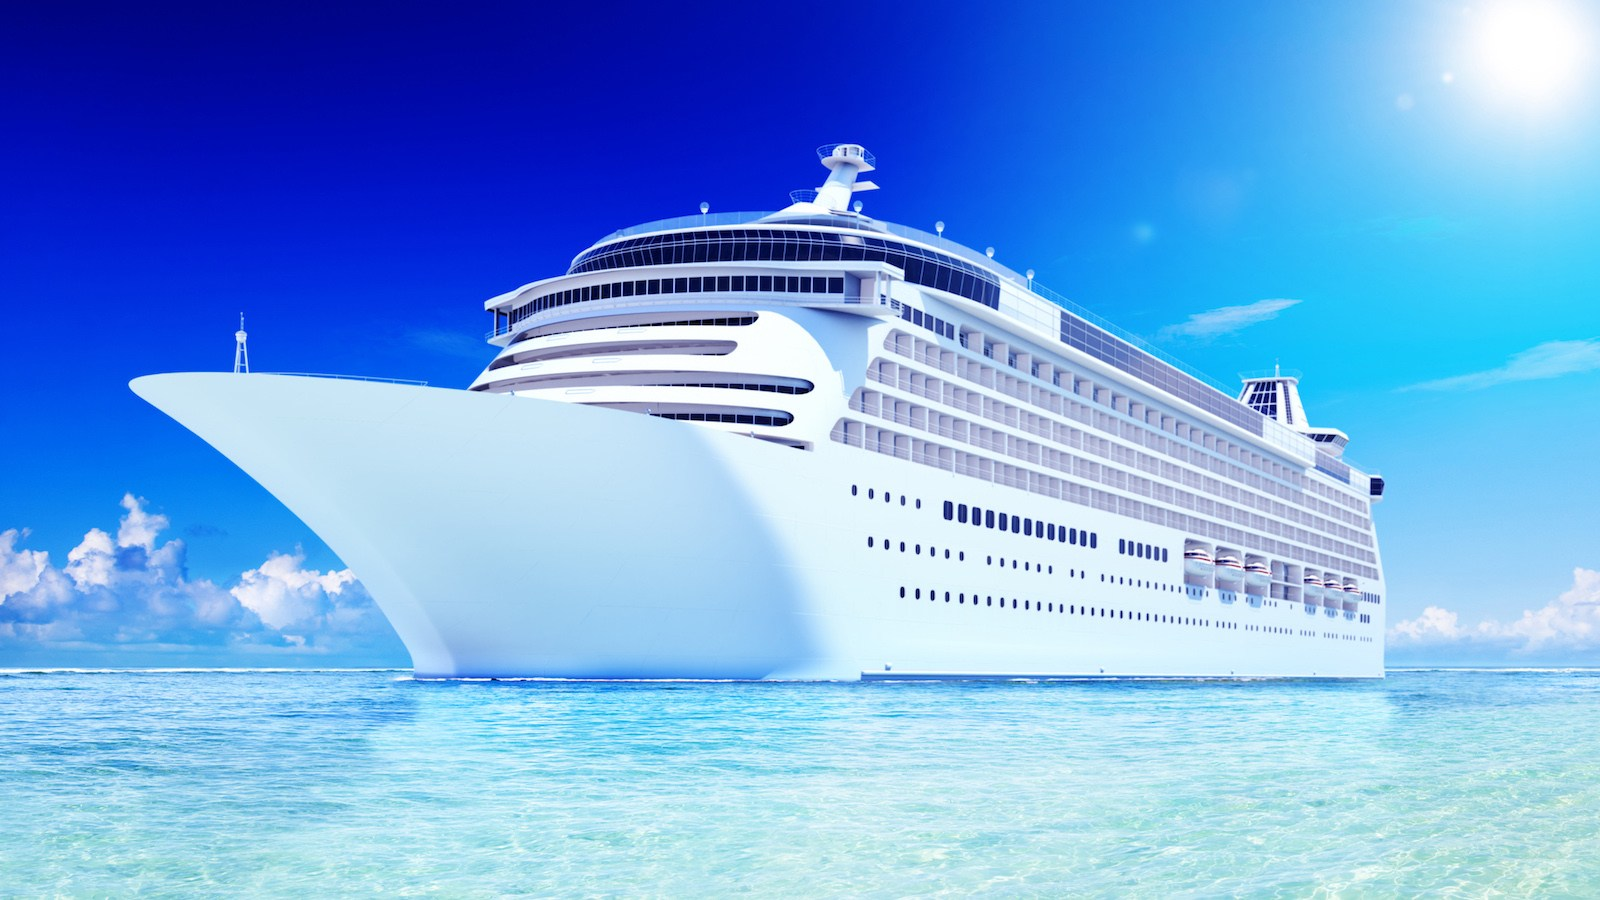 Going on a Cruise - Travel Insurance for RBC Clients